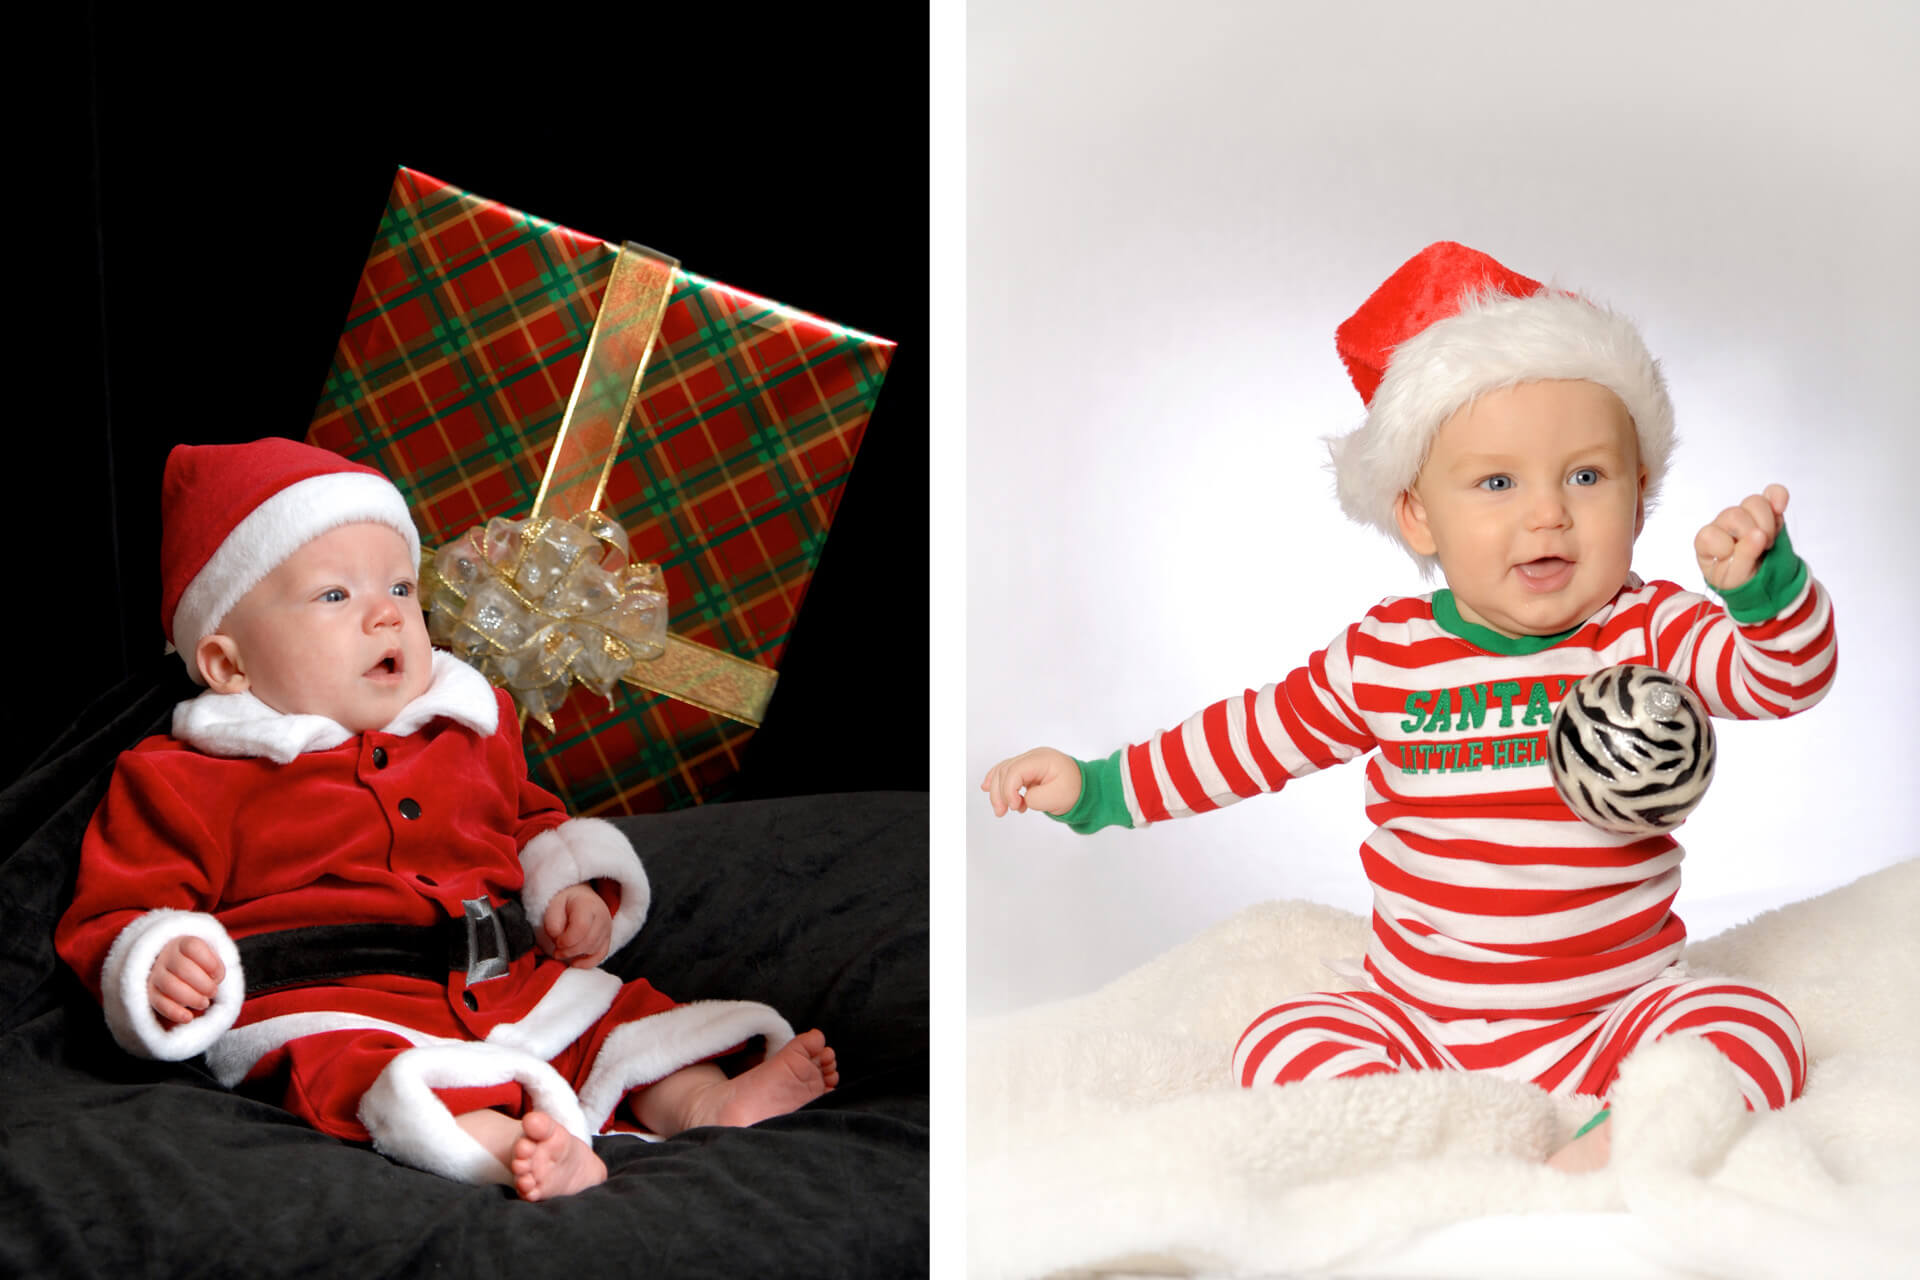 Best Detroit newborn photographer's fun and candid baby photos during the holidays make great holiday gifts for parents and grandparents metro Detroit, Michigan.